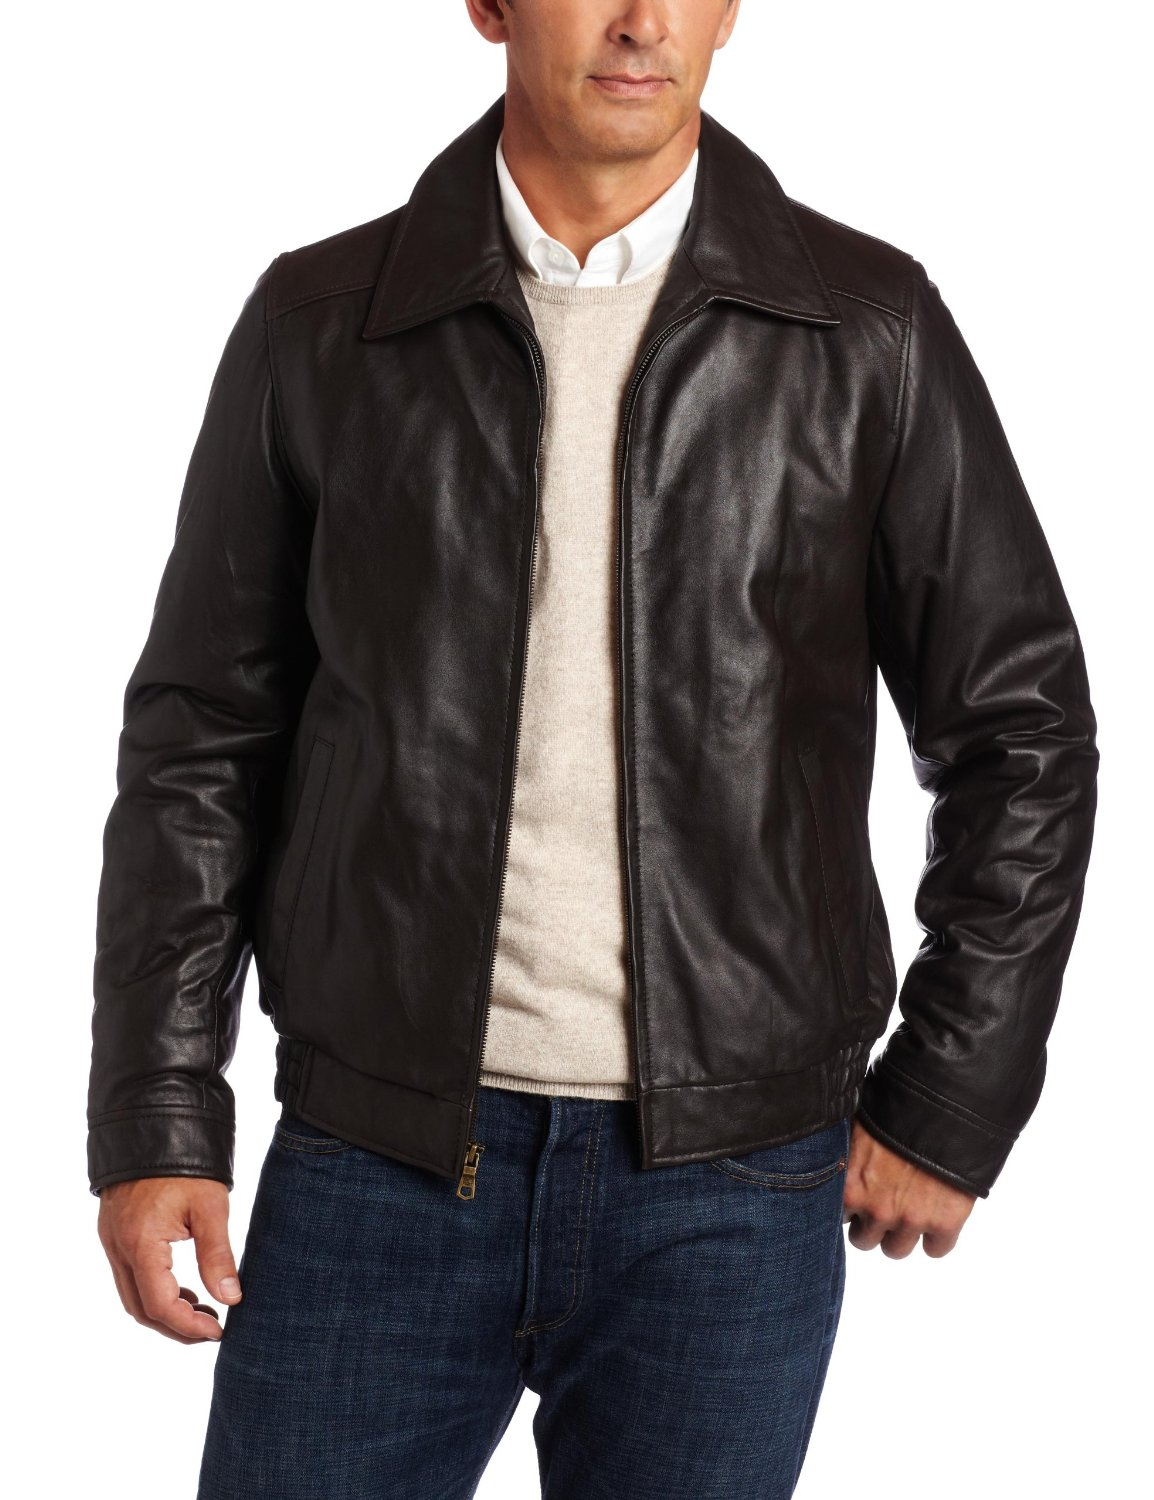 Leather Bomber Jacket – Jackets